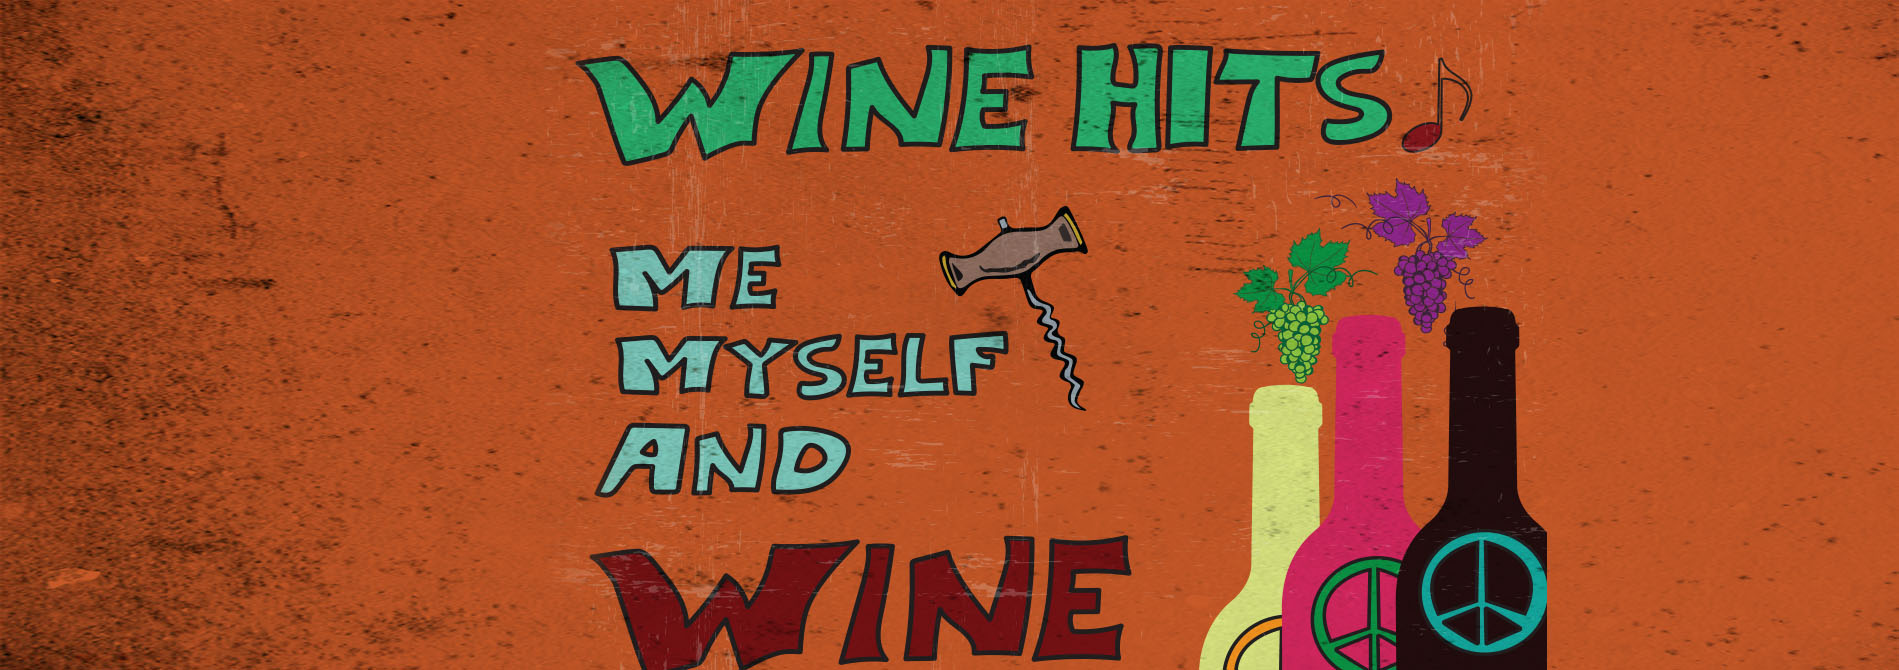 Wine Hits - It's me, myself and wine